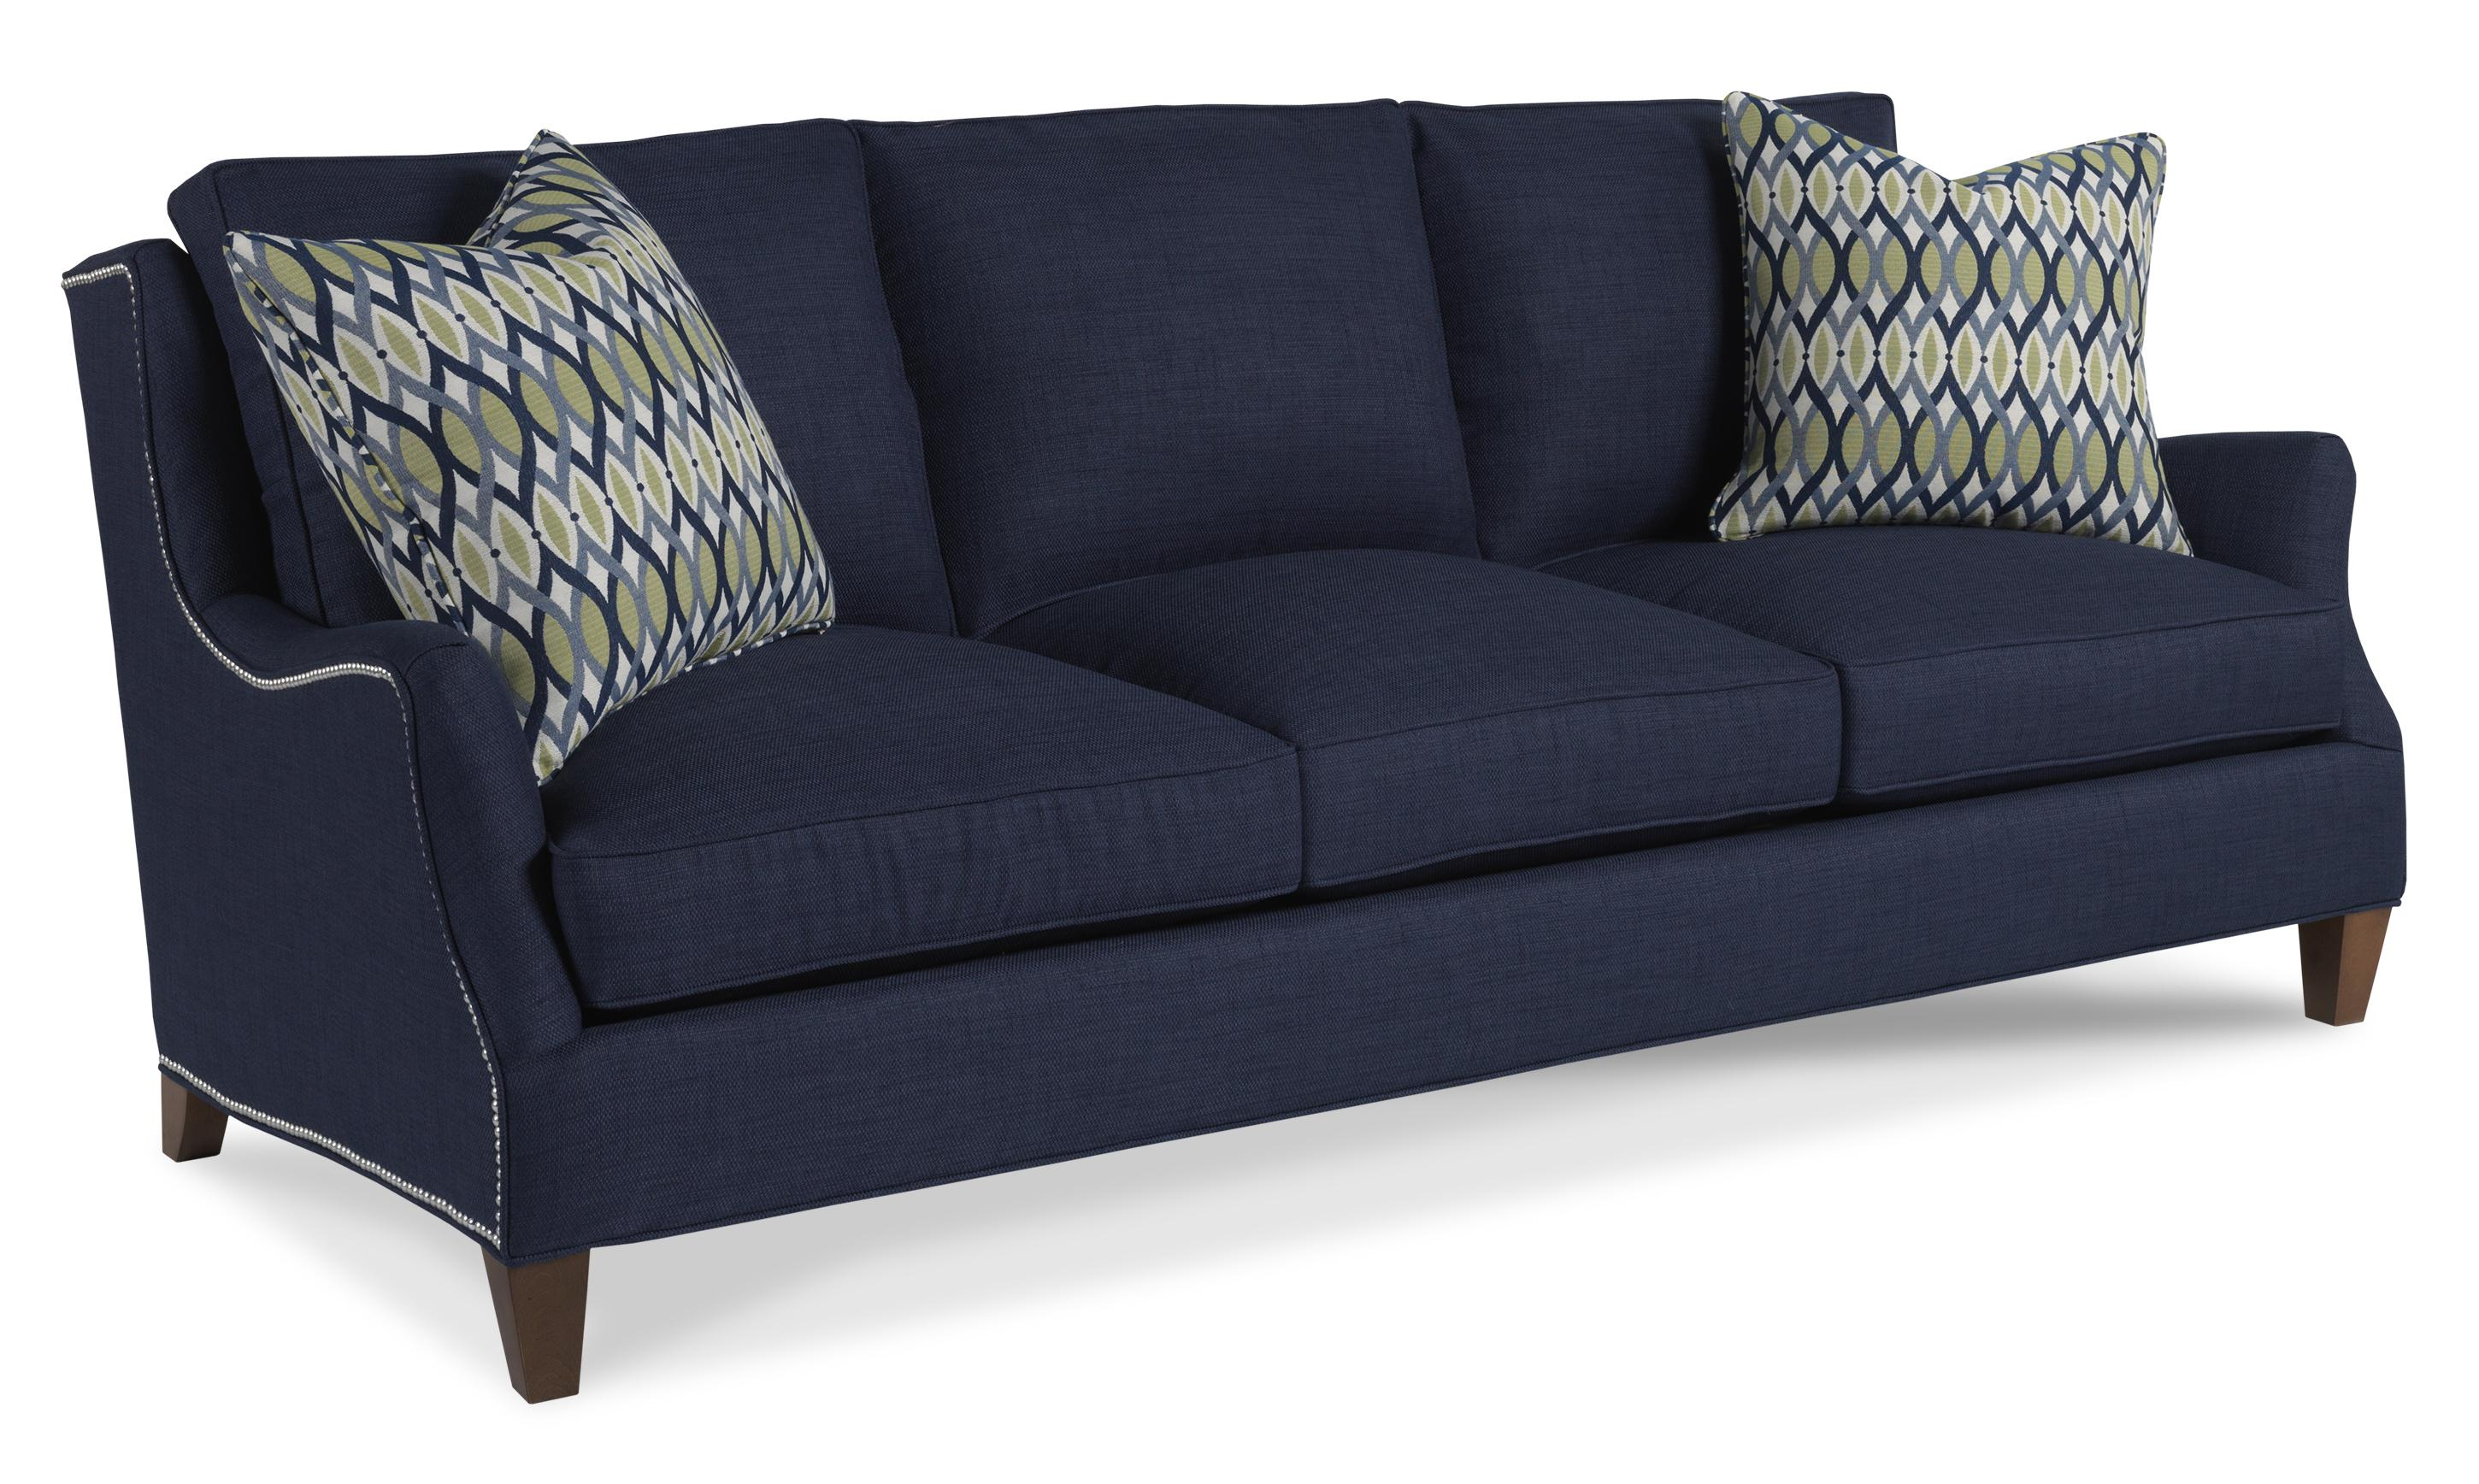 Contemporary Three Seater Sofa with Flair Tapered Arms by Sam